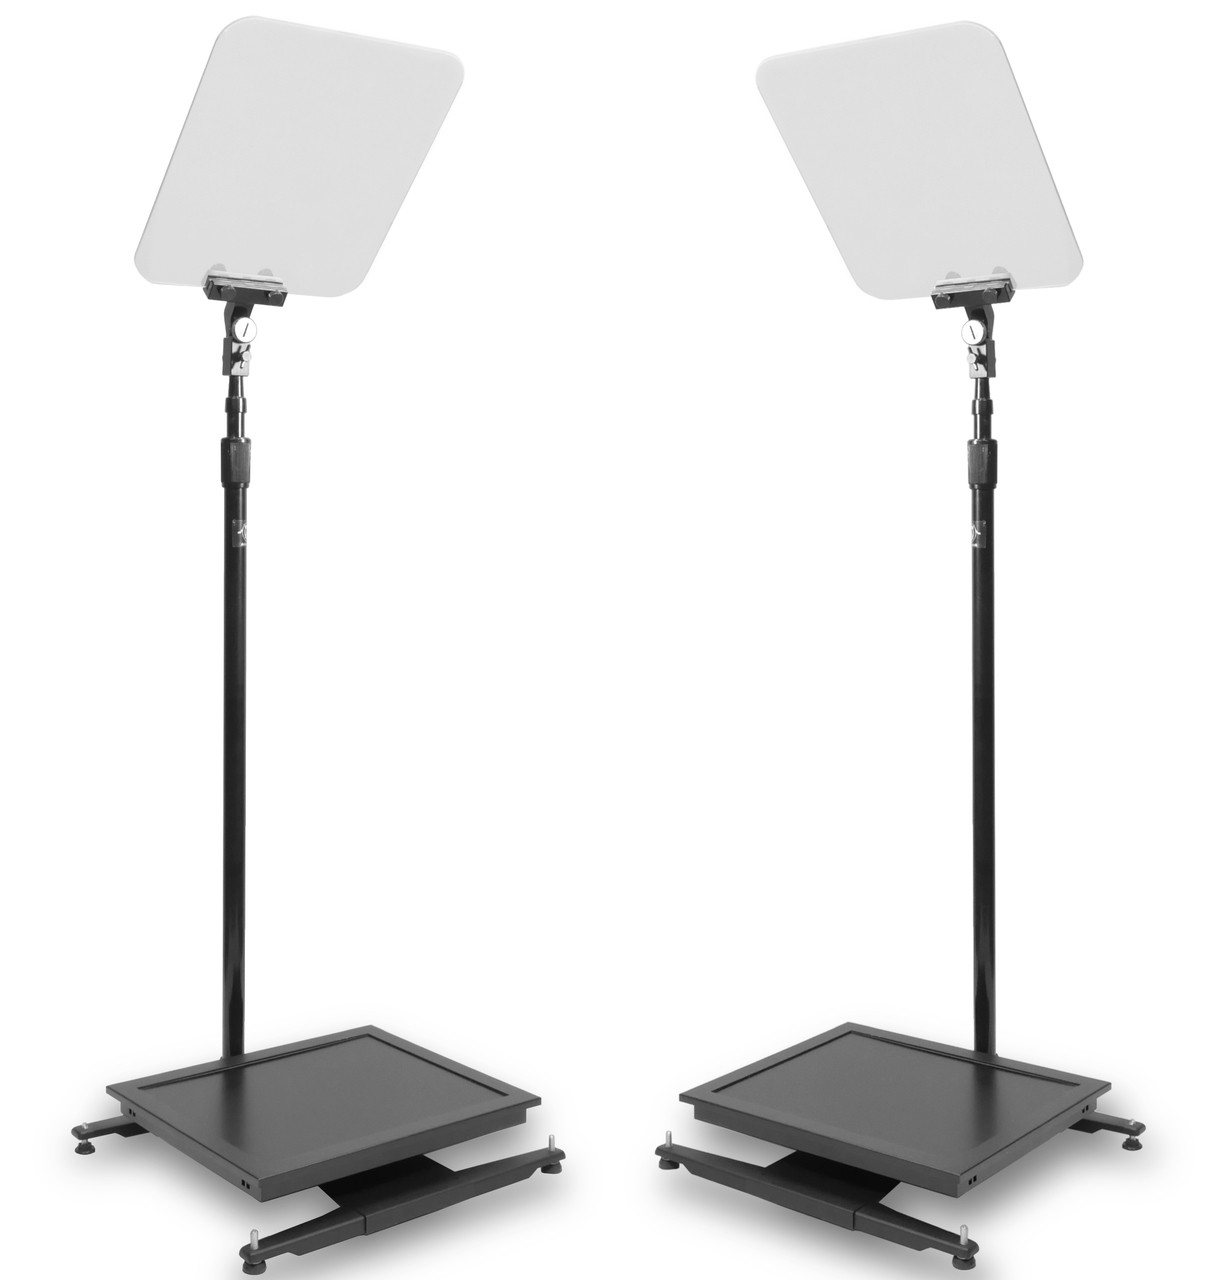 StagePro HighBright Series - Pair